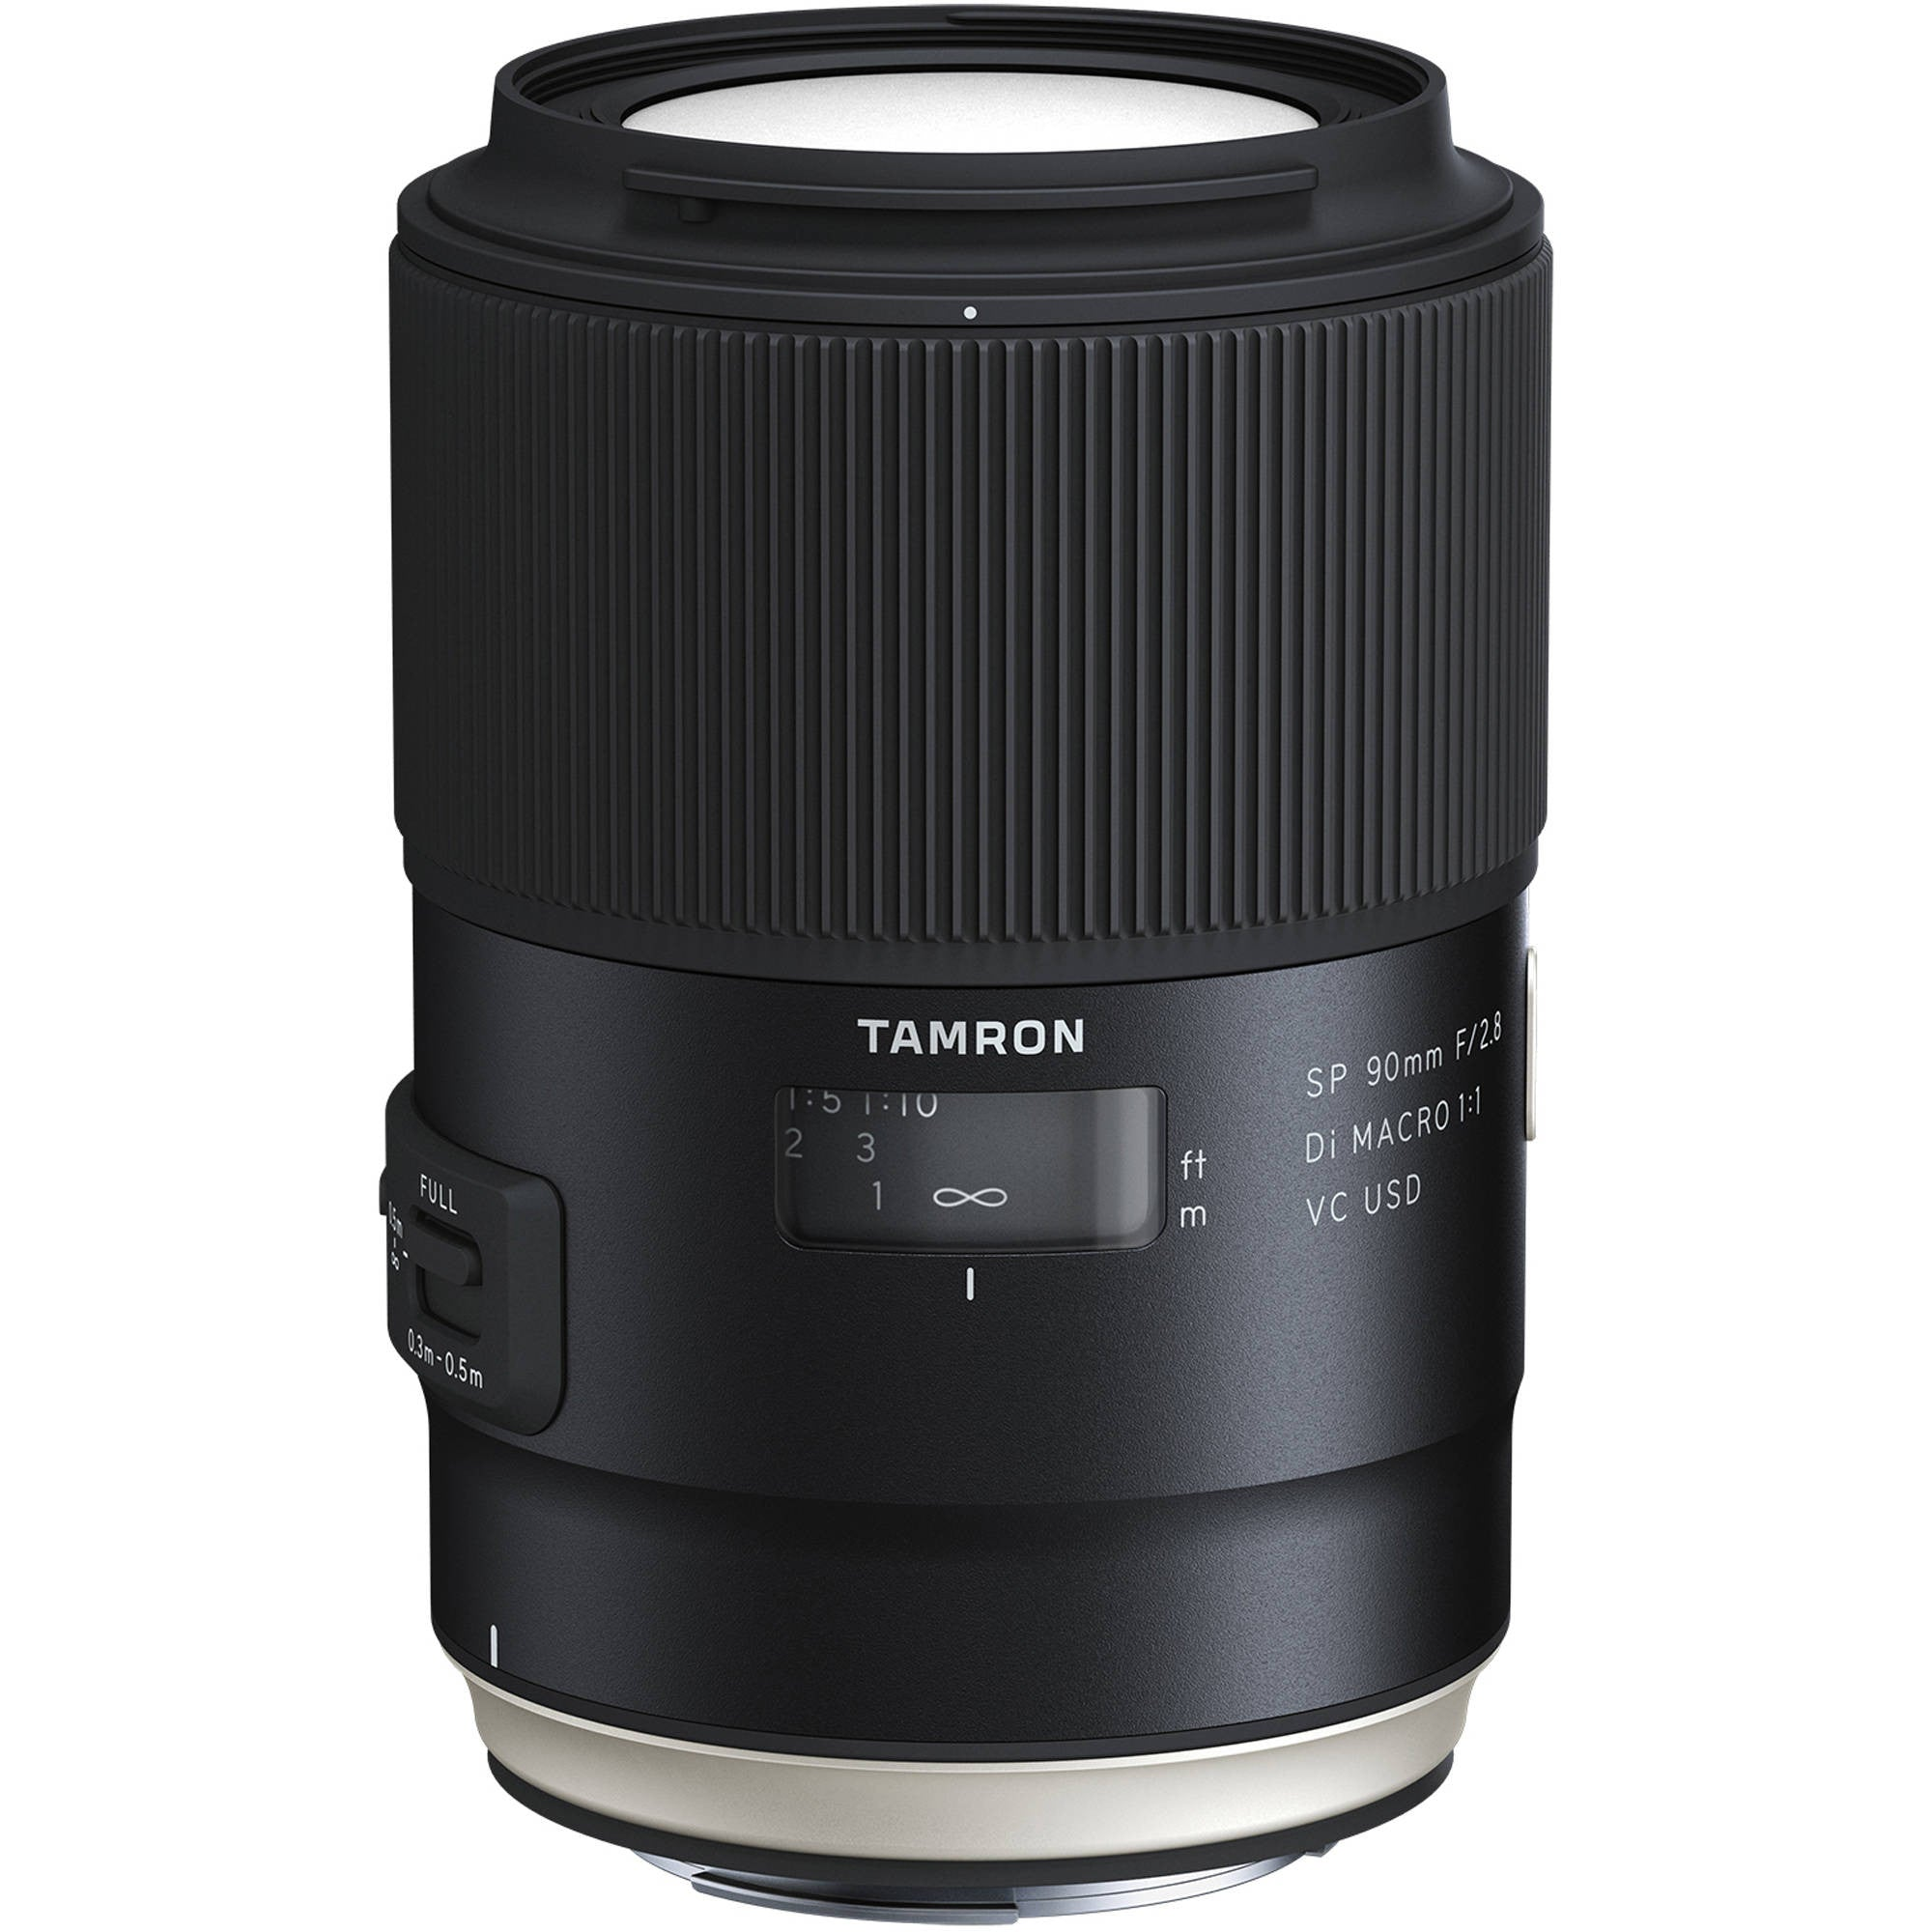 Tamron SP 90mm F/2.8 Di VC USD 1:1 Macro - Sony A-Mount